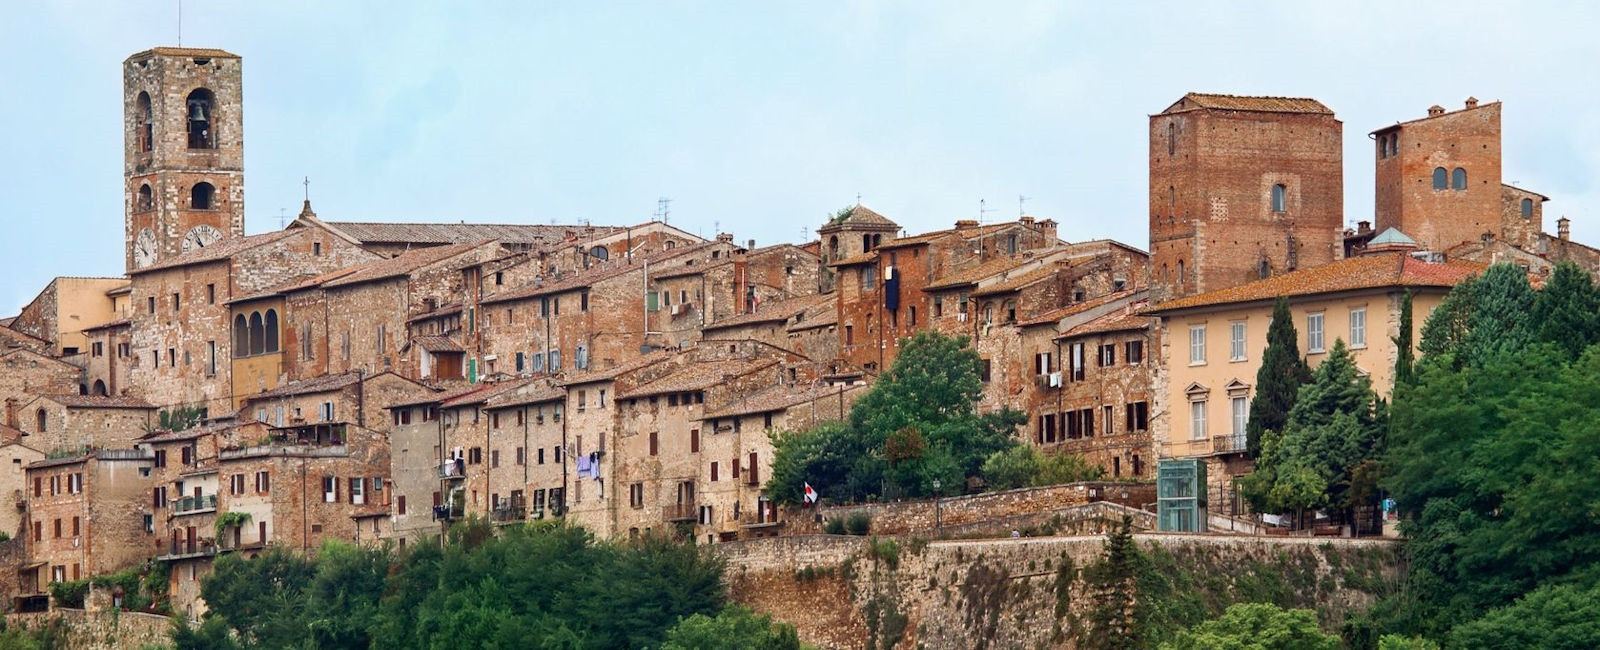 Luxury Colle di Val d'Elsa holidays